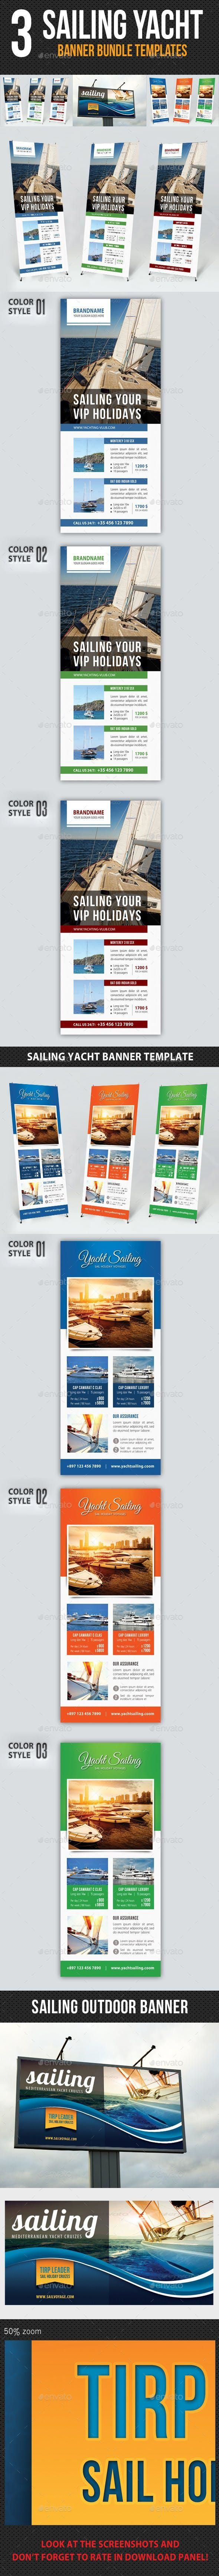 3 in 1 Sailing Yacht Banner Bundle 02 #PrintTemplates #template #PrintDesign #ma...